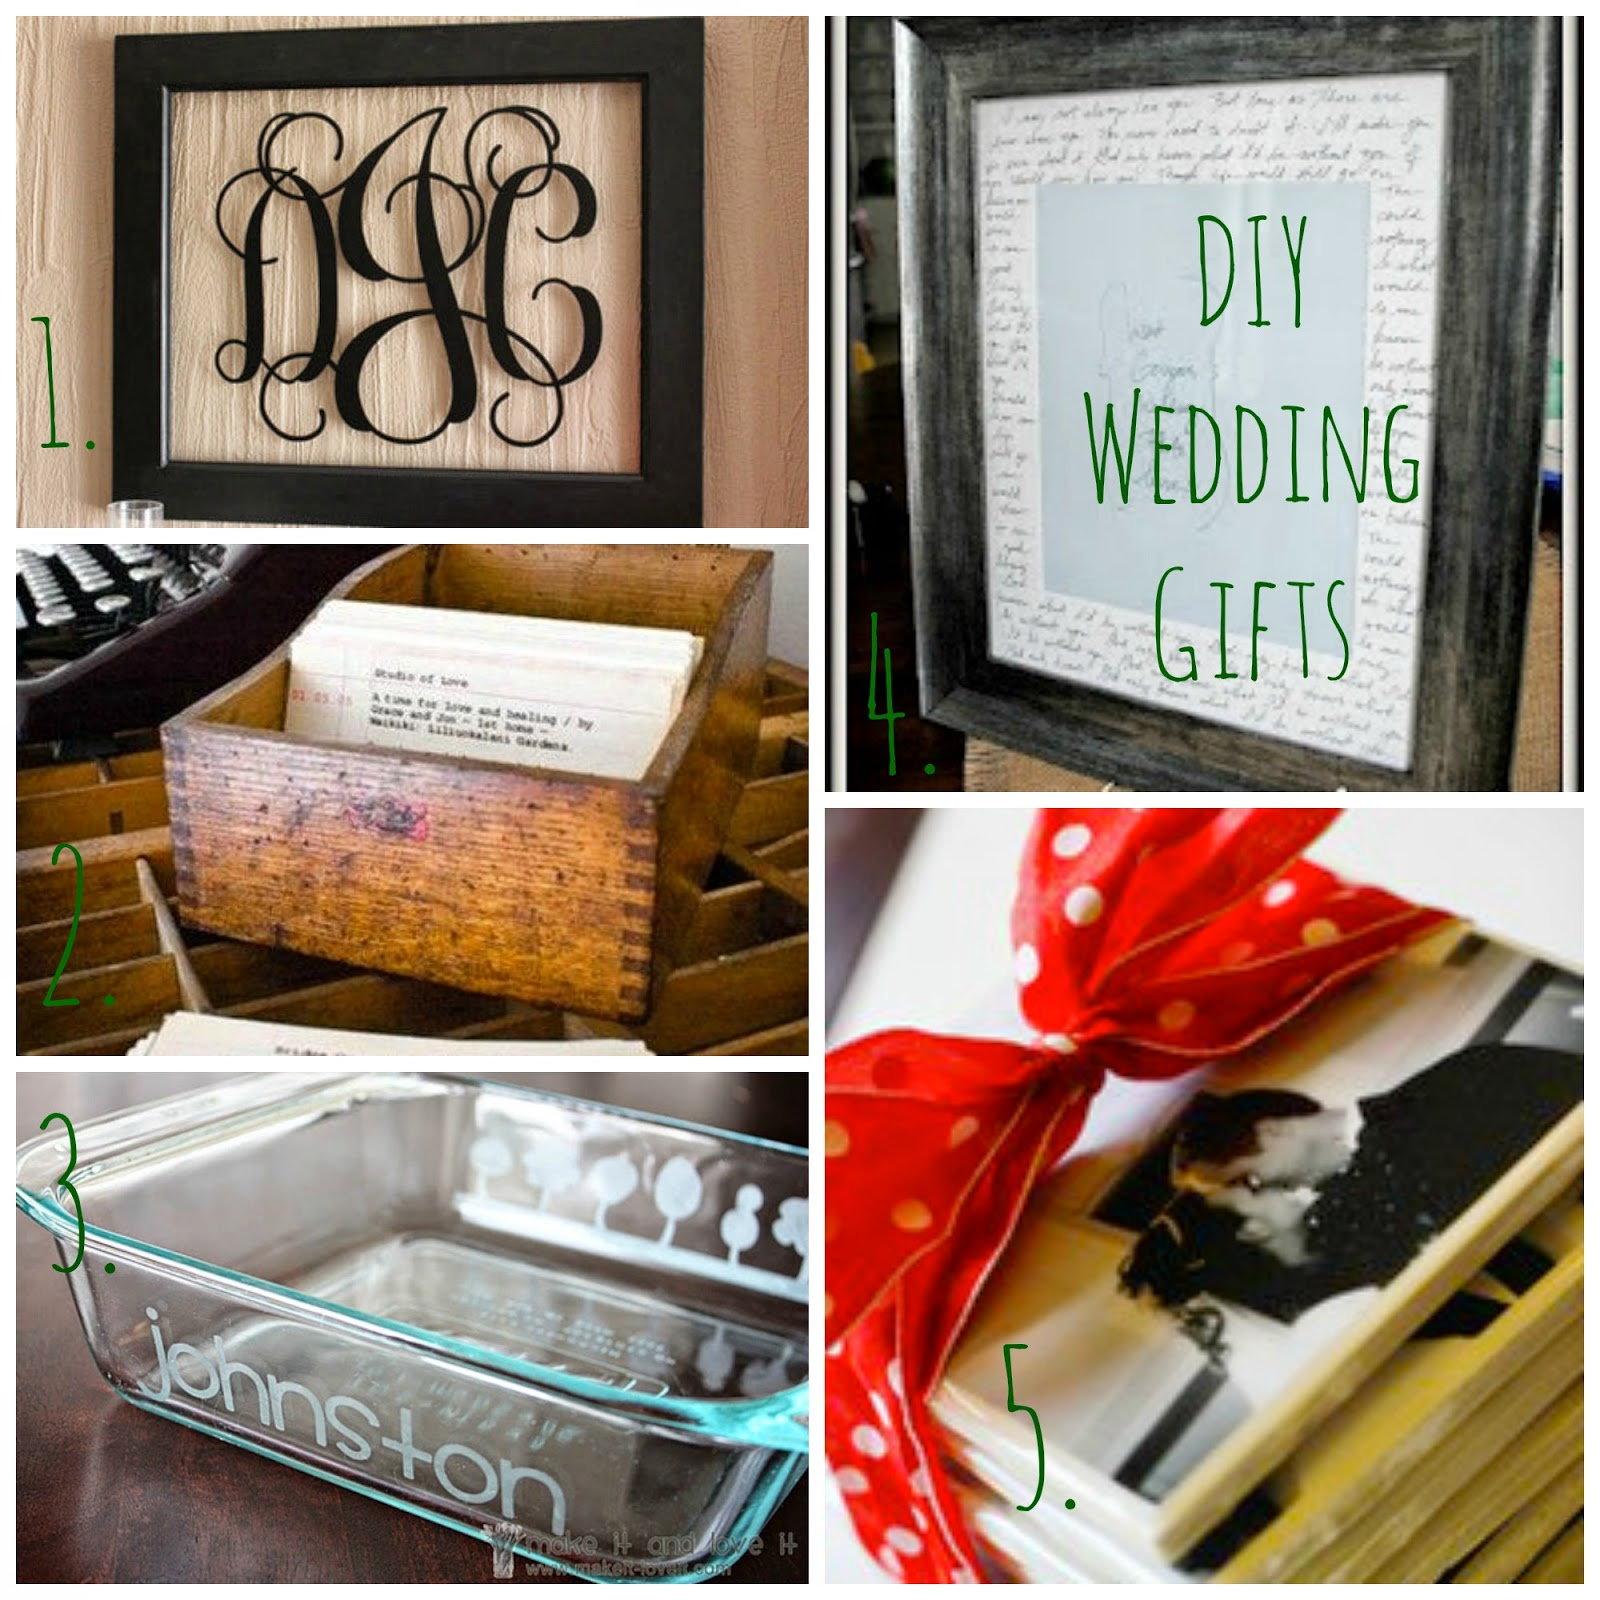 Wedding Gift Ideas For Young Couple : Ideas Wedding Gifts For A Couple holeh pocket diy inspiration wedding ...